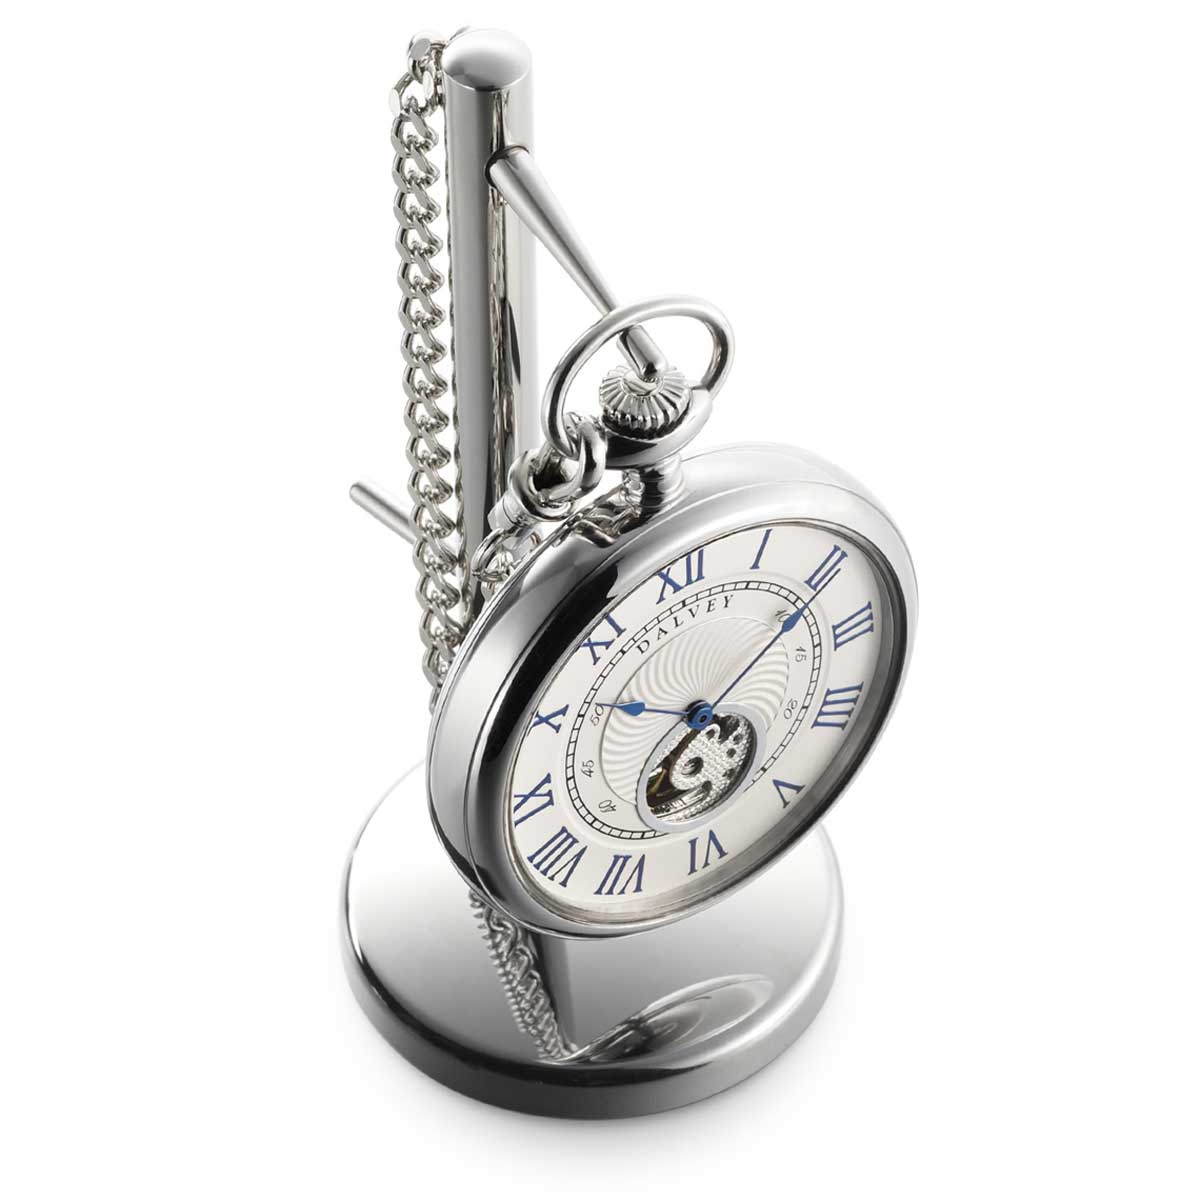 Dalvey Open-Face Pocket Watch & Stand